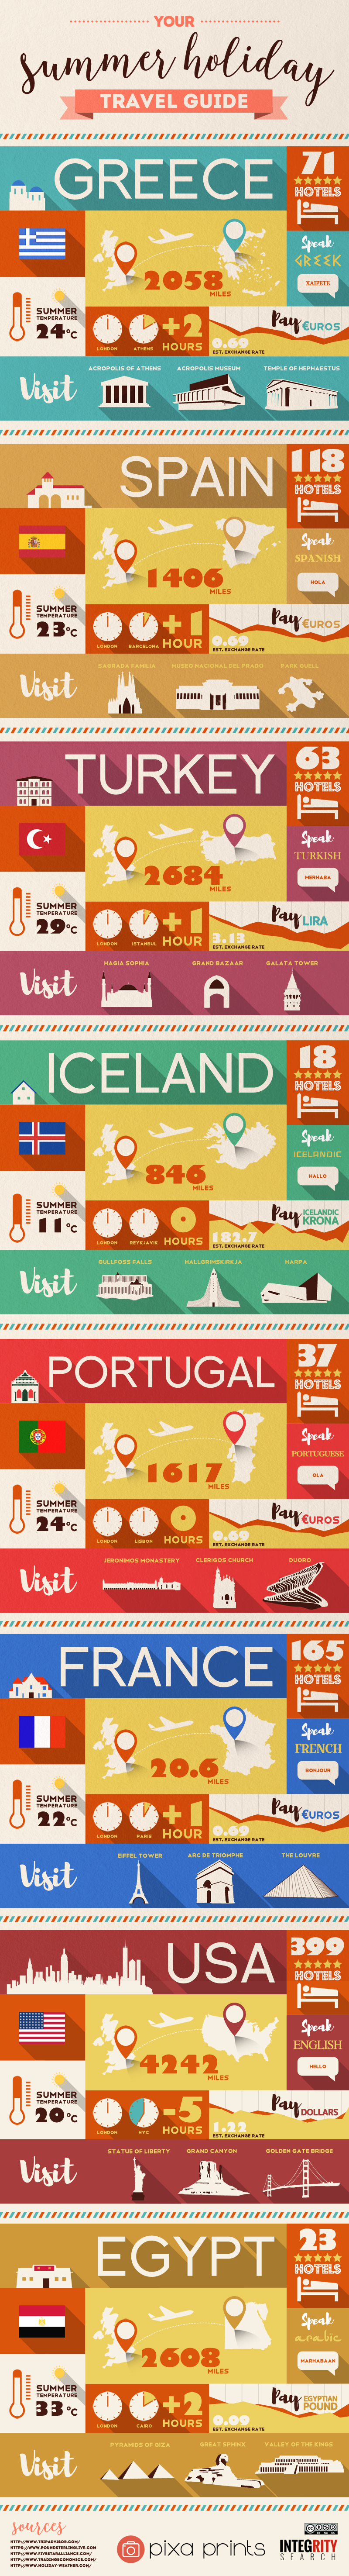 Summer Holiday Travel Guide Infographic